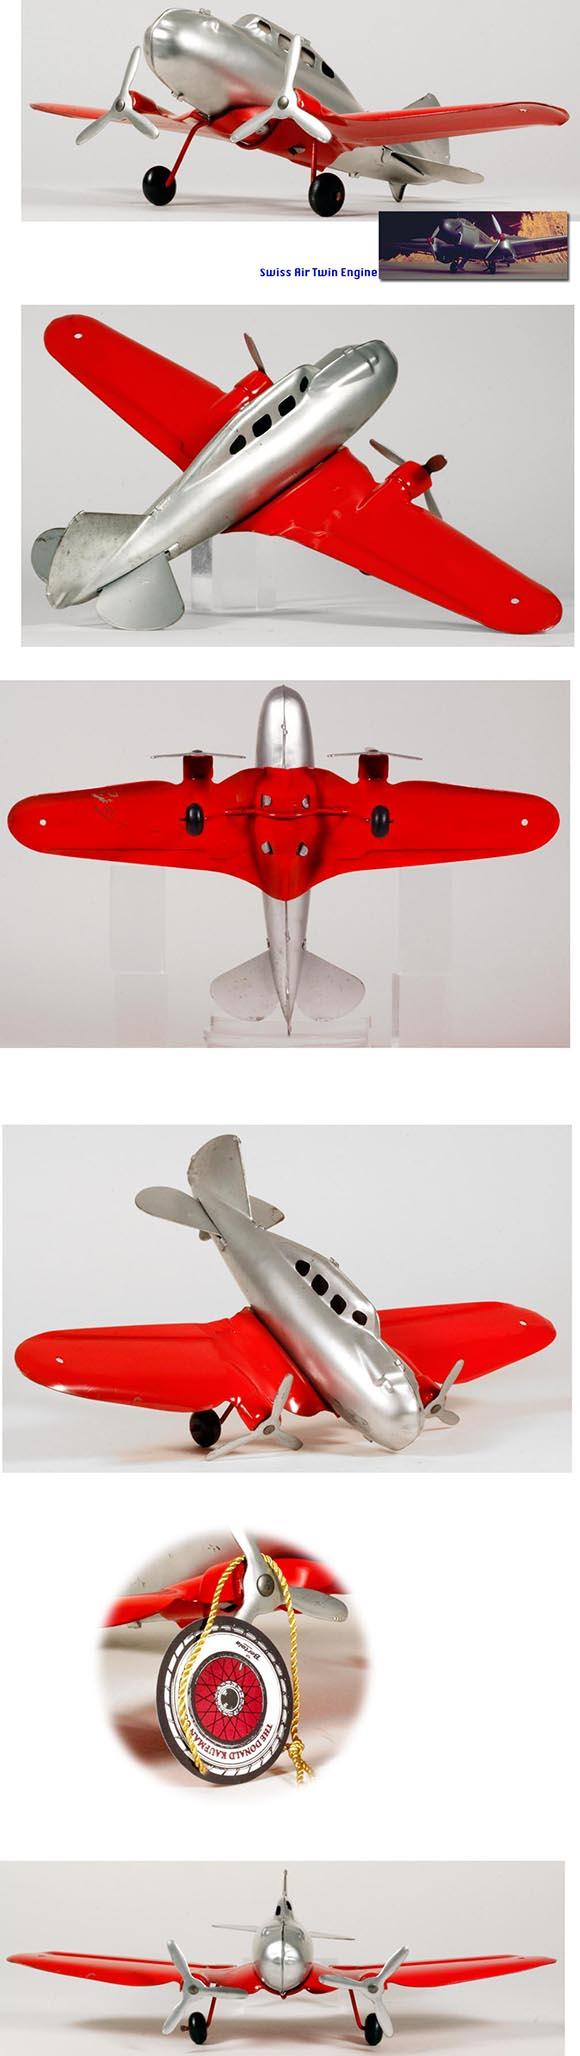 c.1946 Marx Pressed Steel Twin Engine Airplane